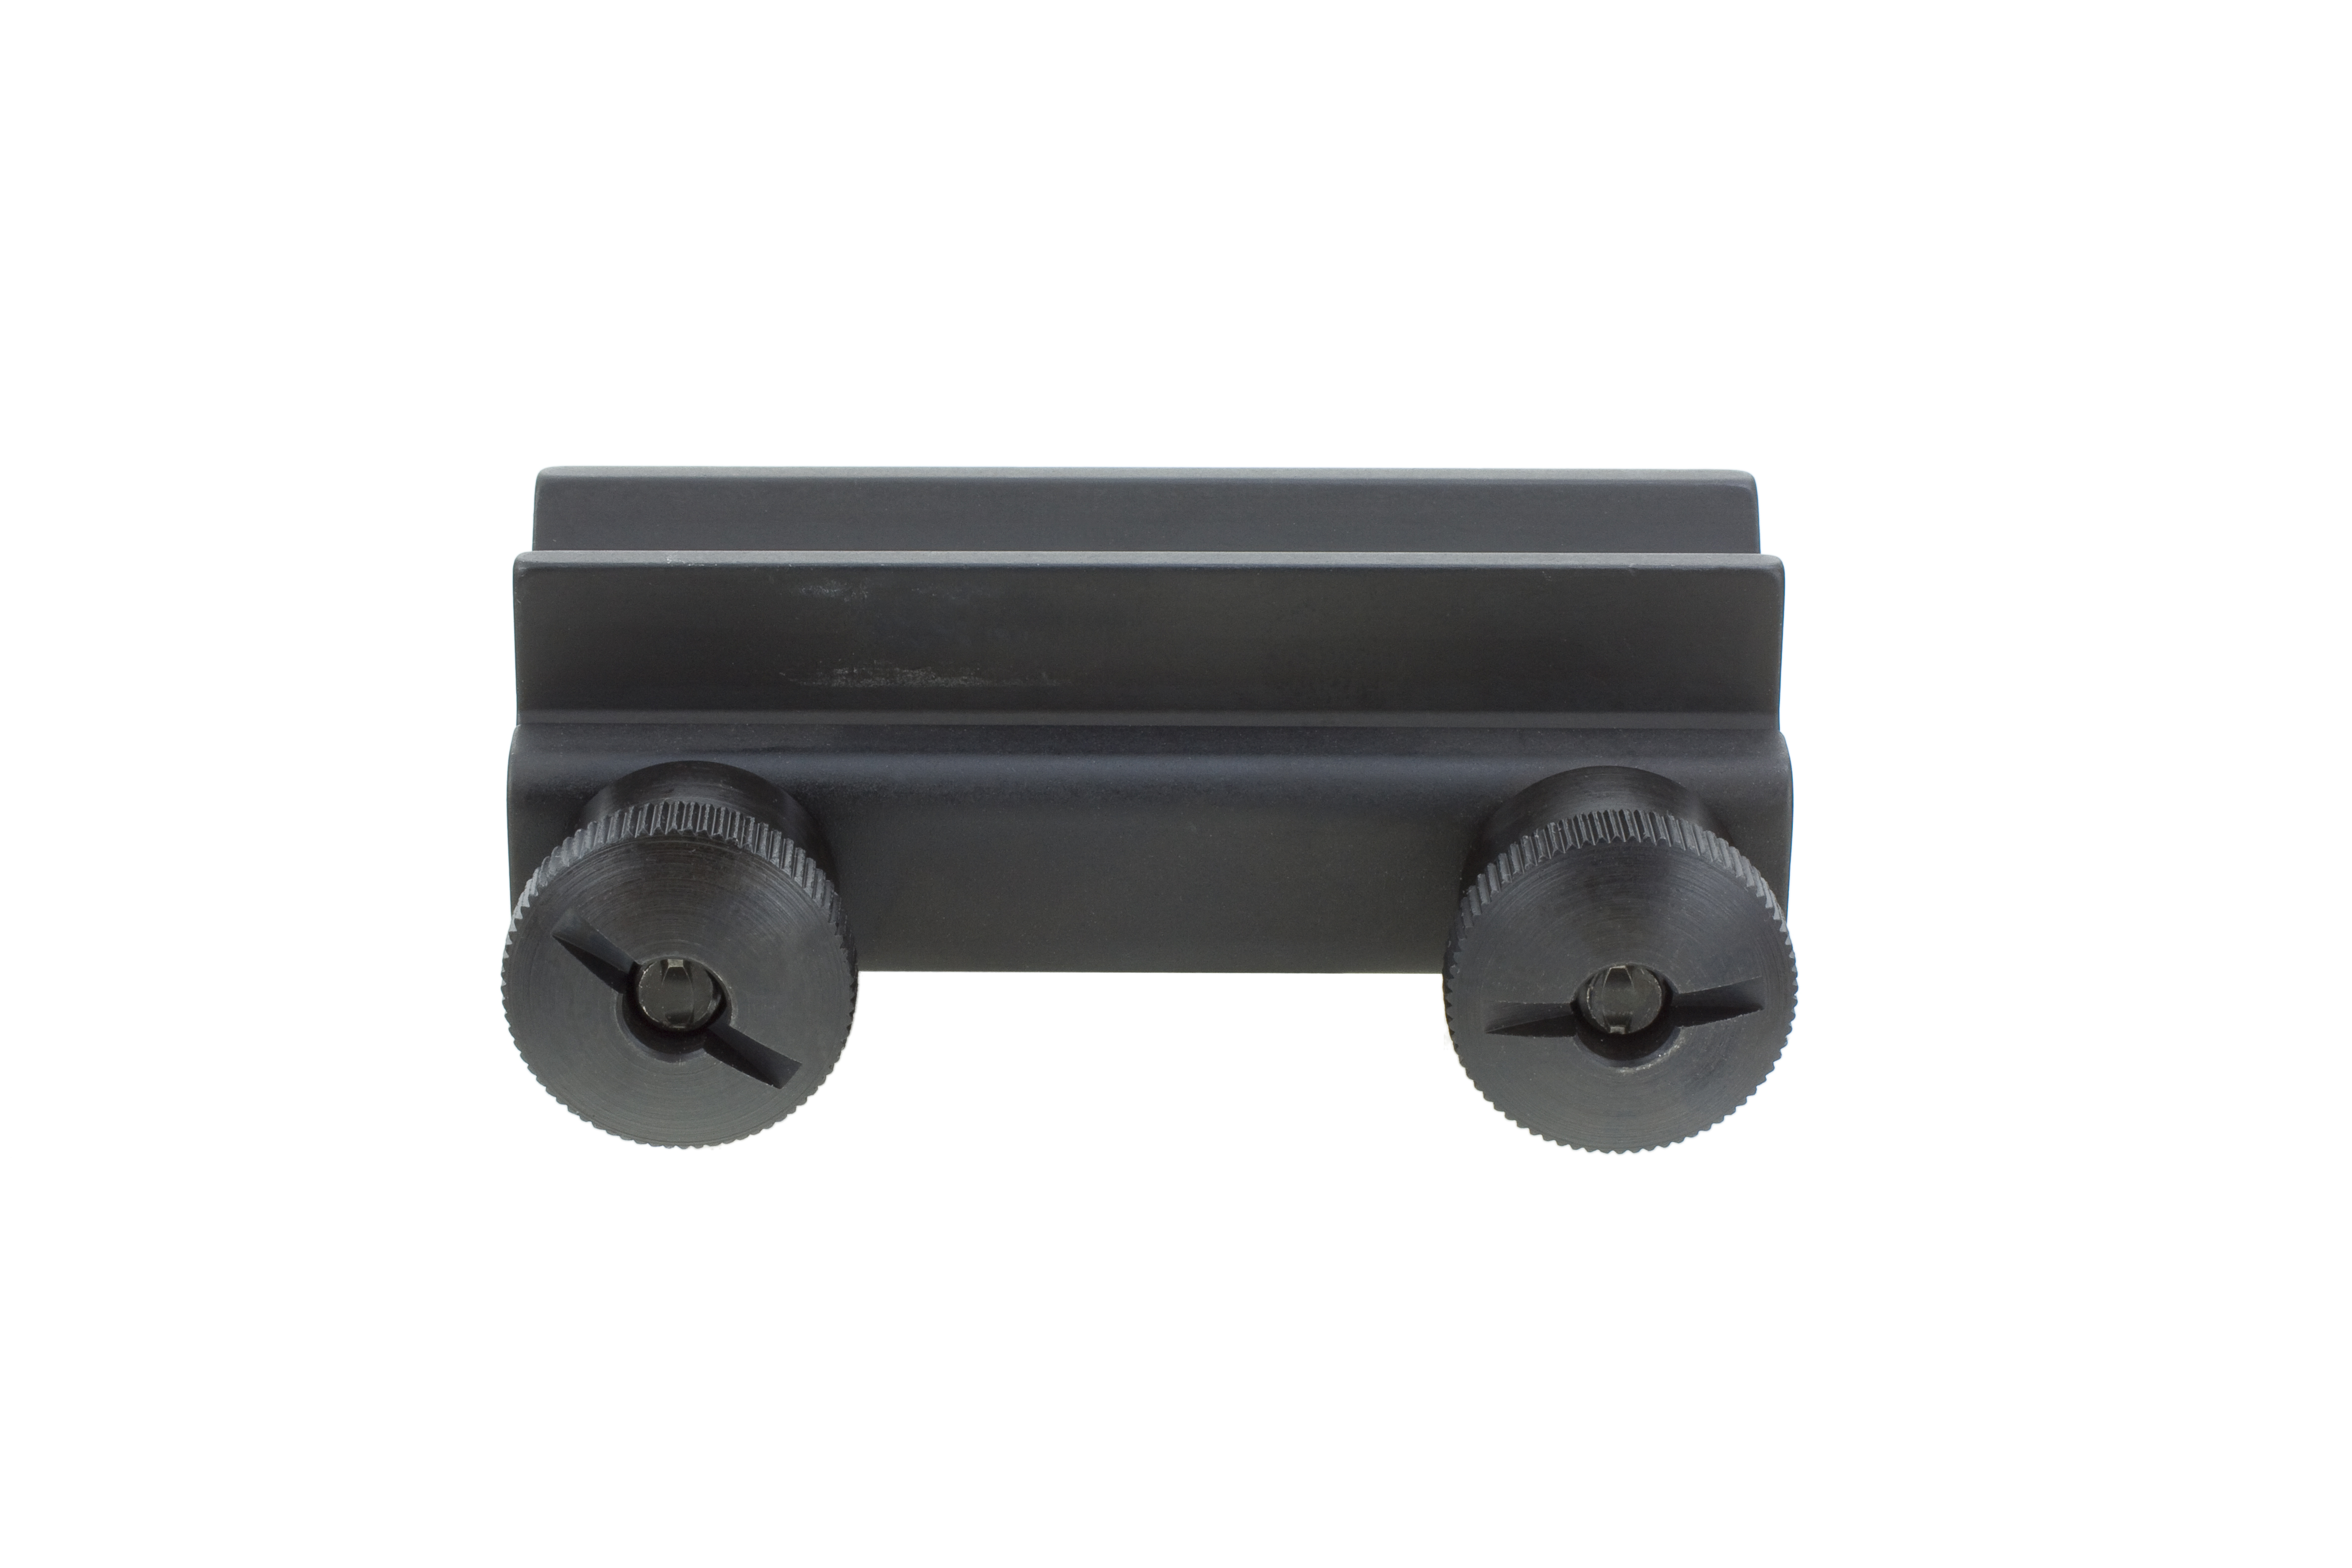 ACOG® M4 Mount for 1.5x16, 2x20, 3x24, 3x30 M16 Base Models